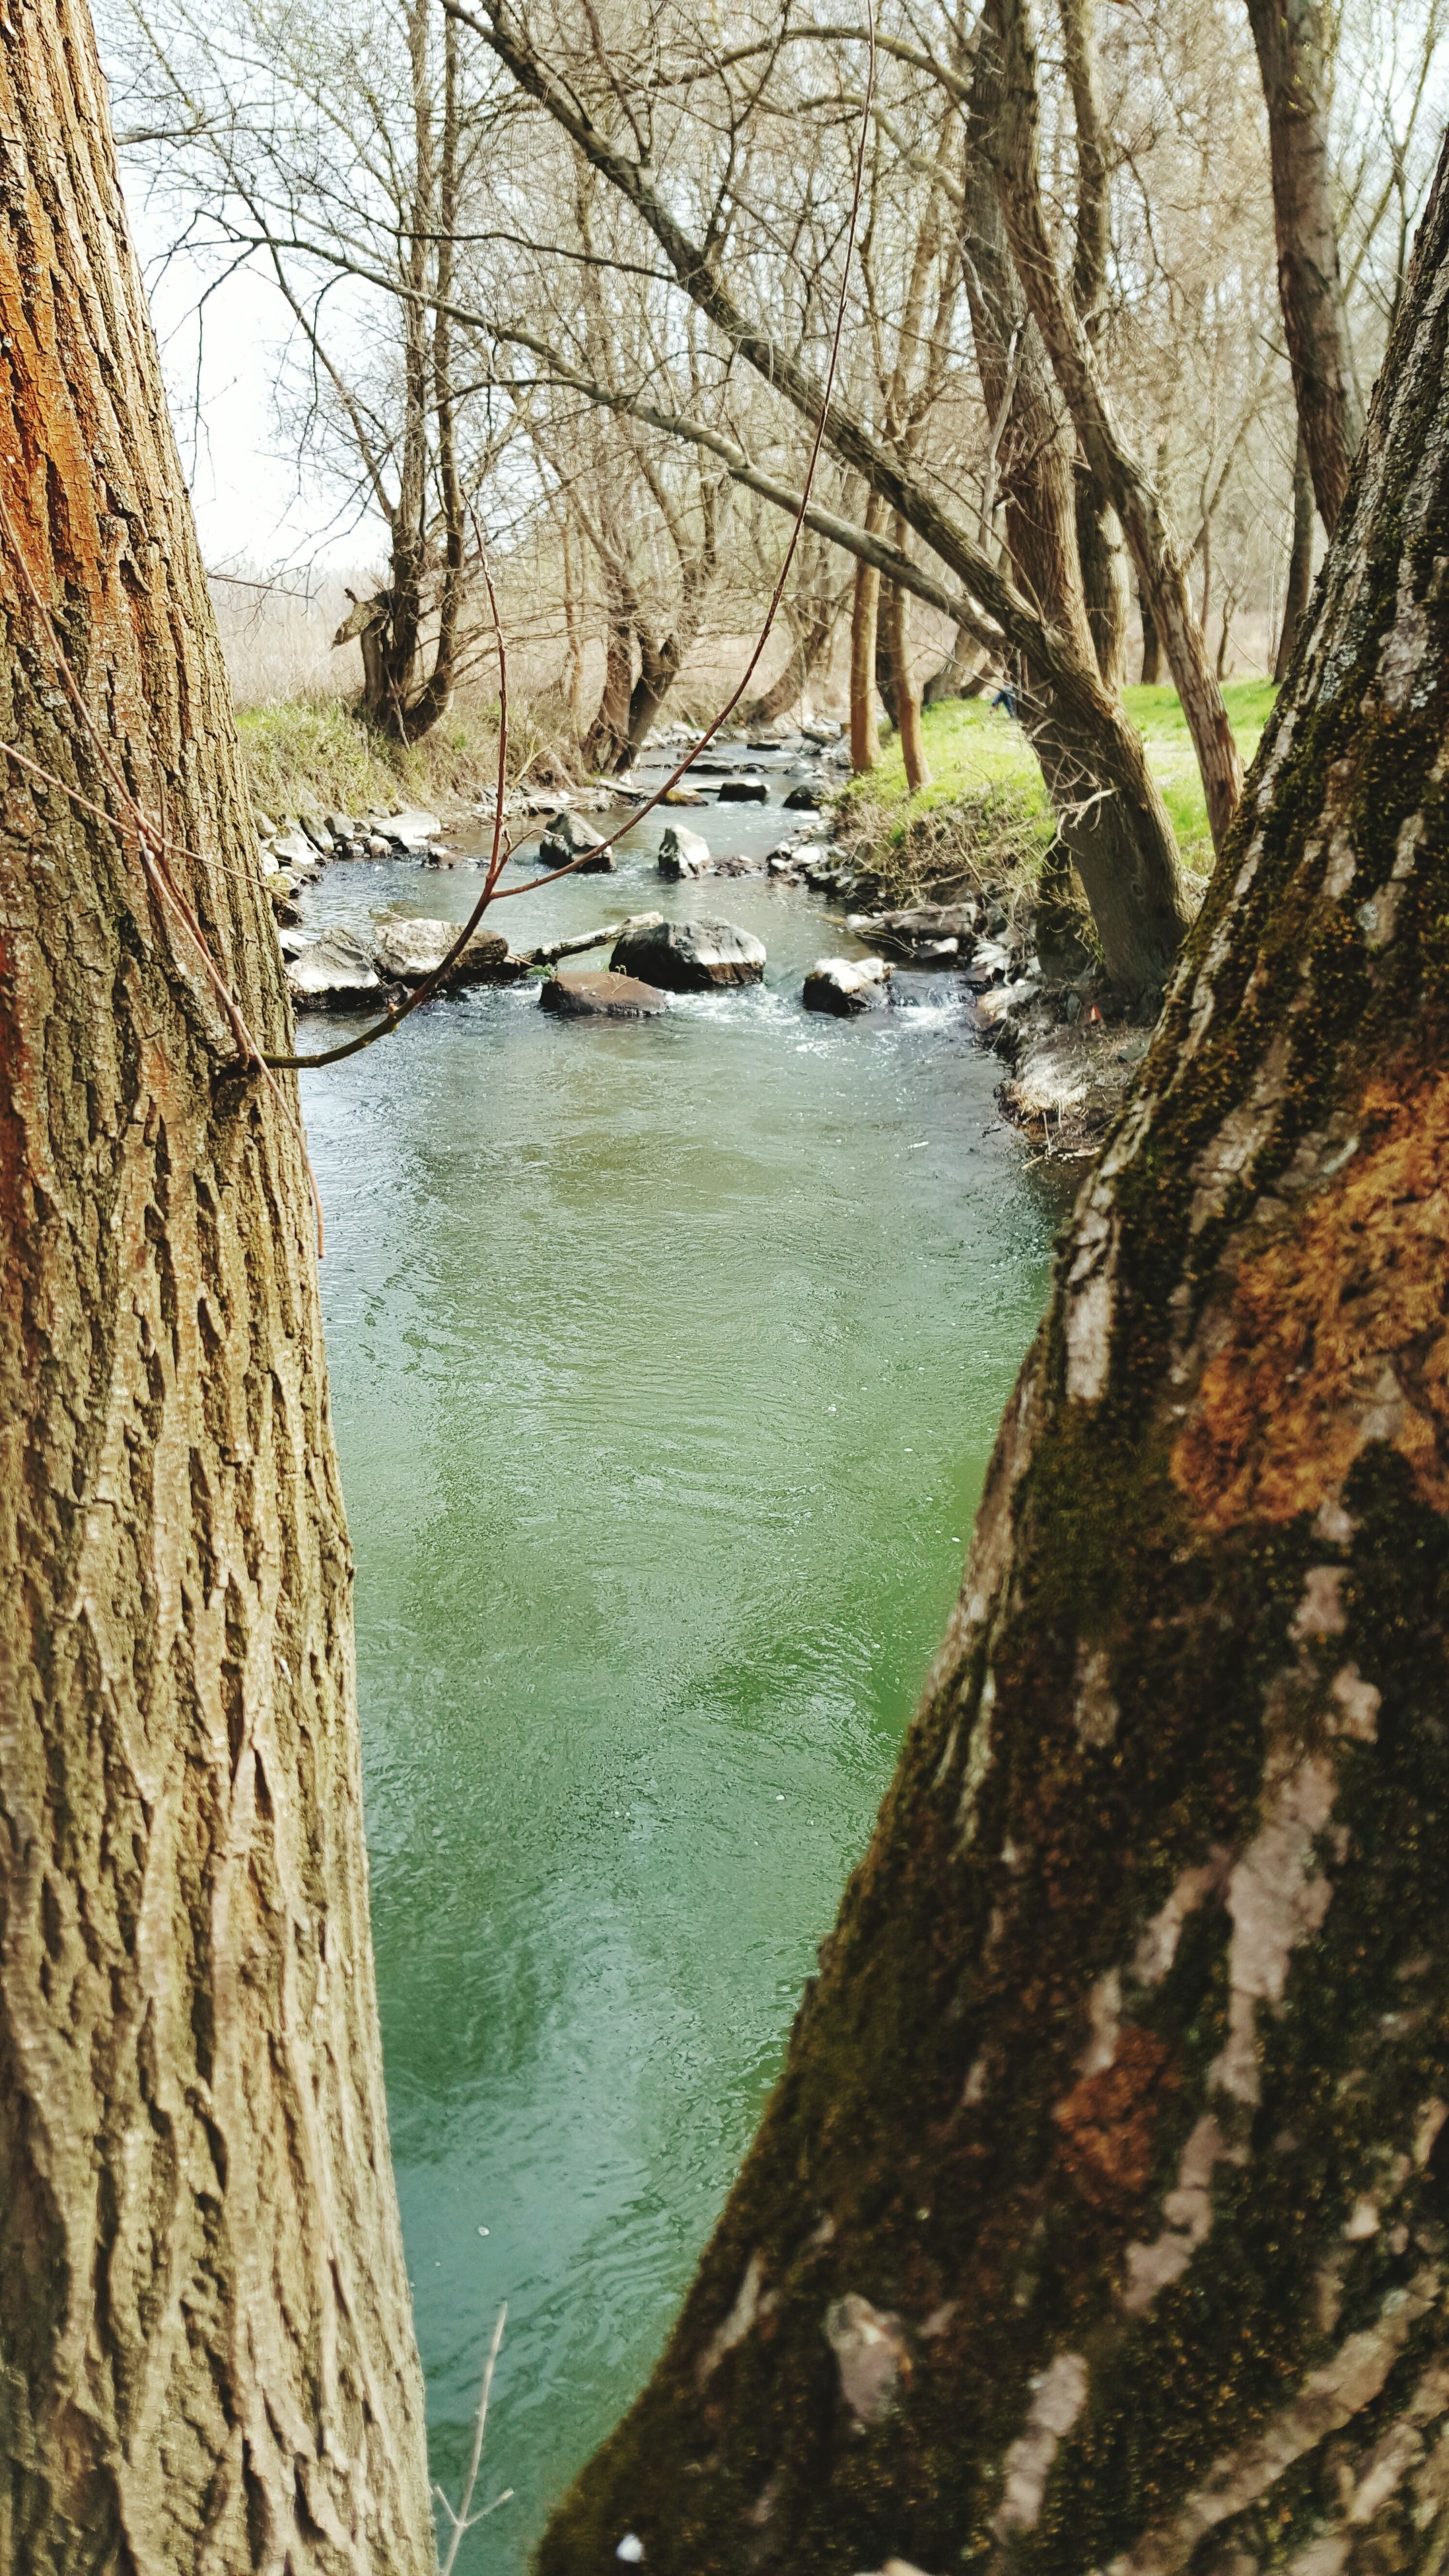 water, tranquility, tranquil scene, scenics, nature, beauty in nature, tree, river, rock - object, tree trunk, rock formation, sky, branch, lake, reflection, idyllic, bare tree, day, outdoors, no people